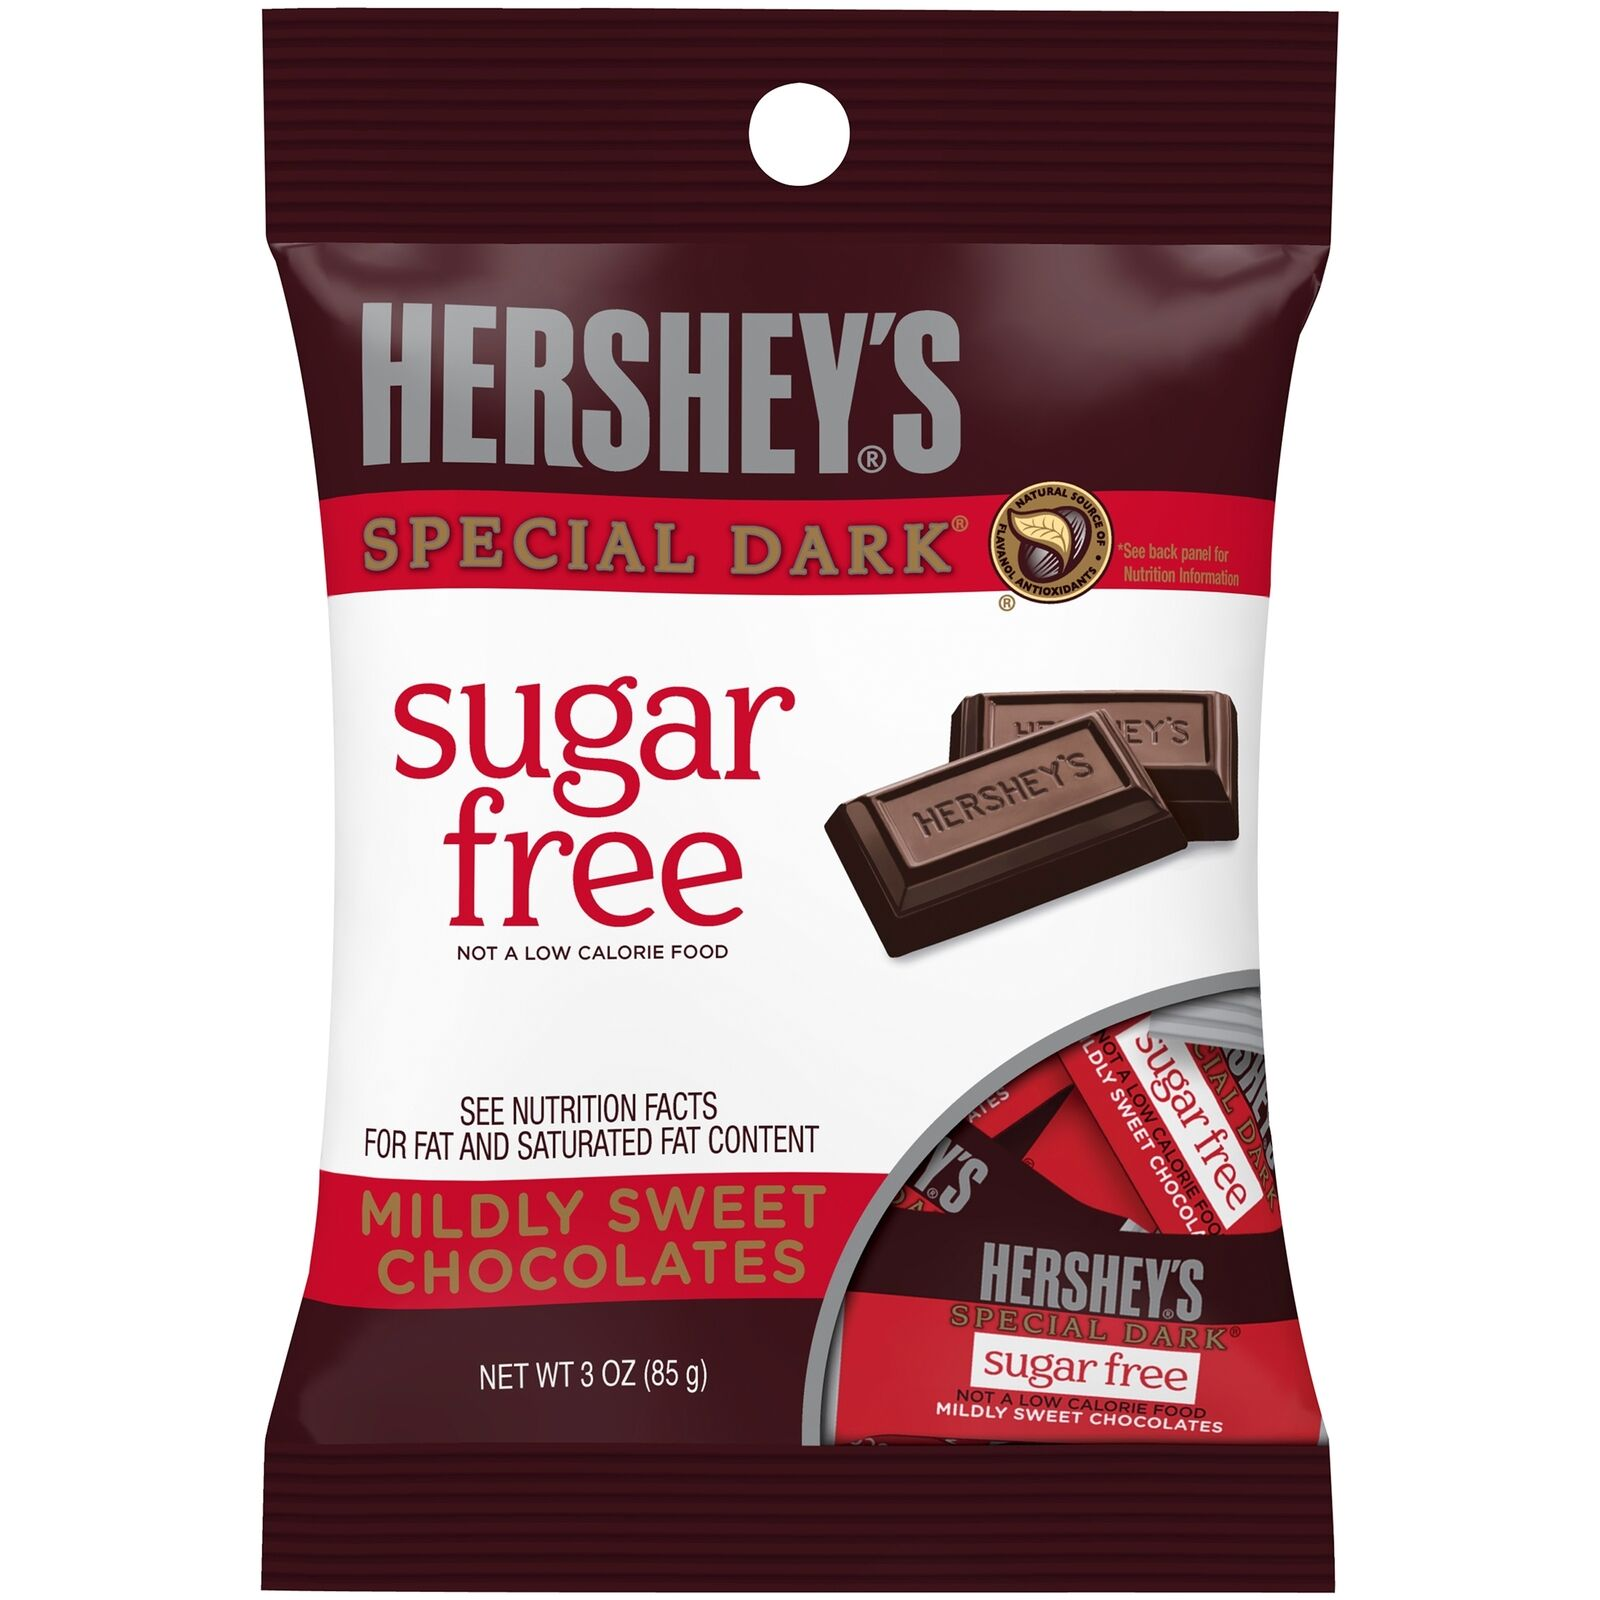 Hershey's Special Dark Mildly Sweet Chocolate Sugar Free Bars, 3oz Bag